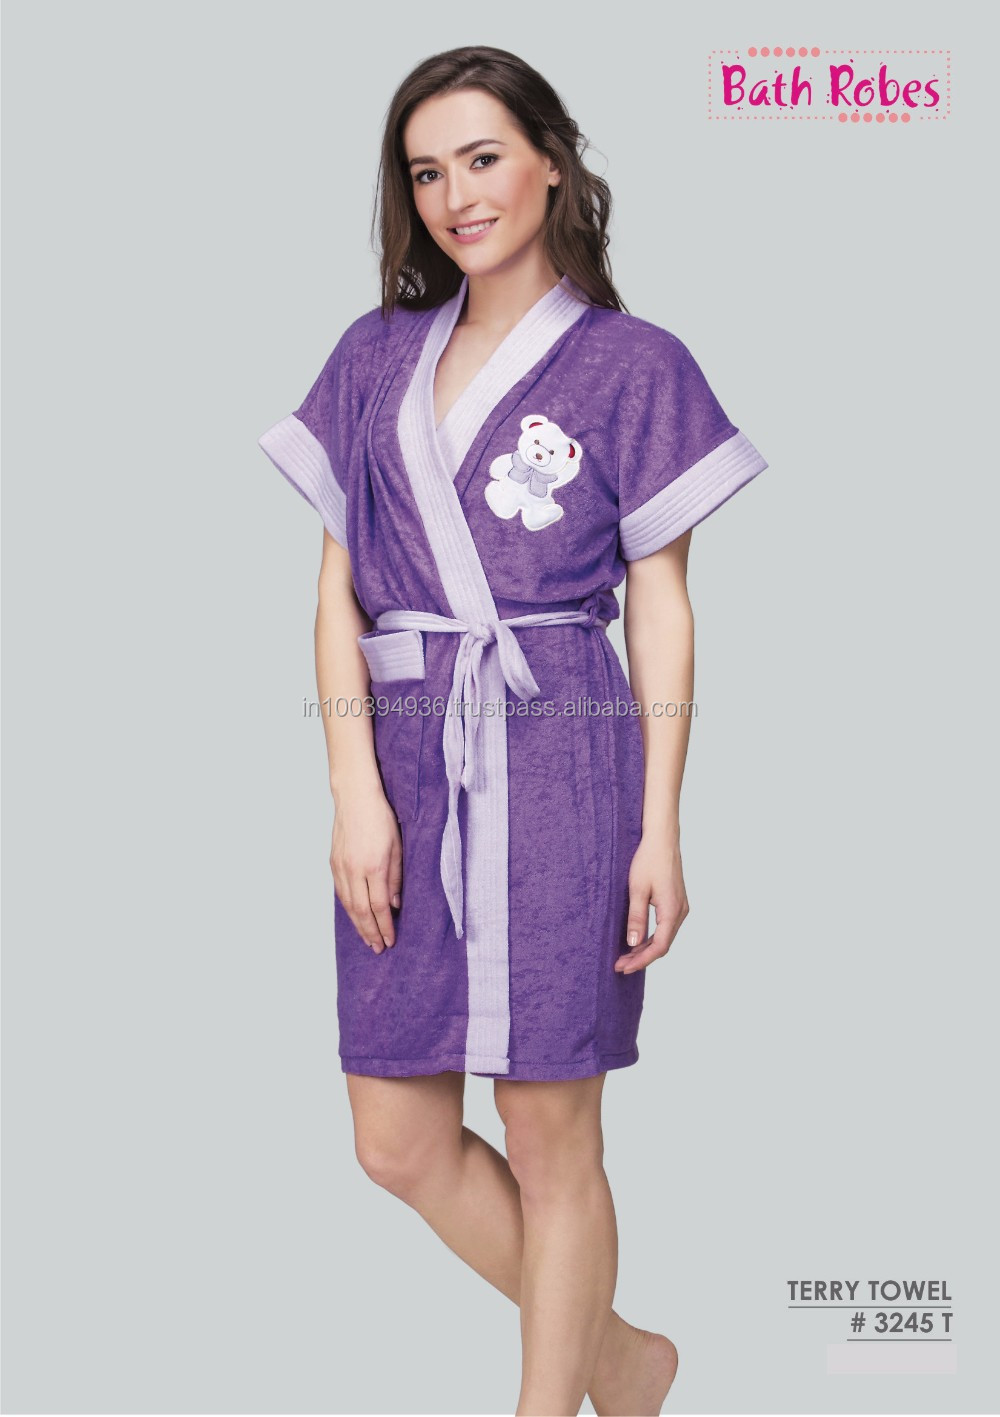 She'n'She Premium Teddy Bath Robe #3245T